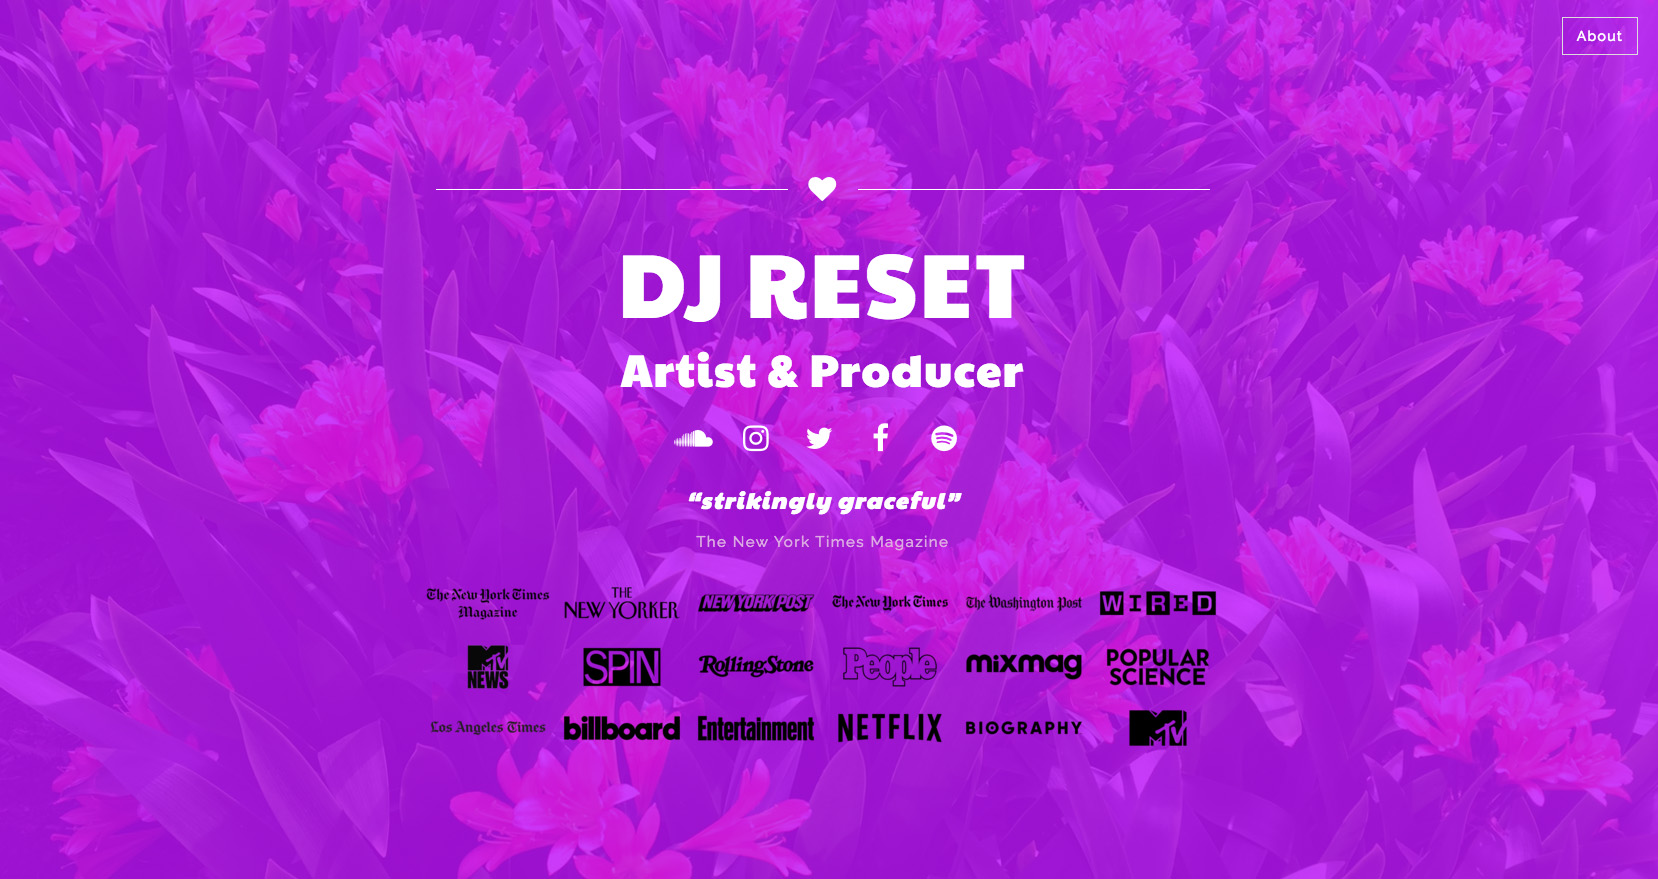 DJ Reset website